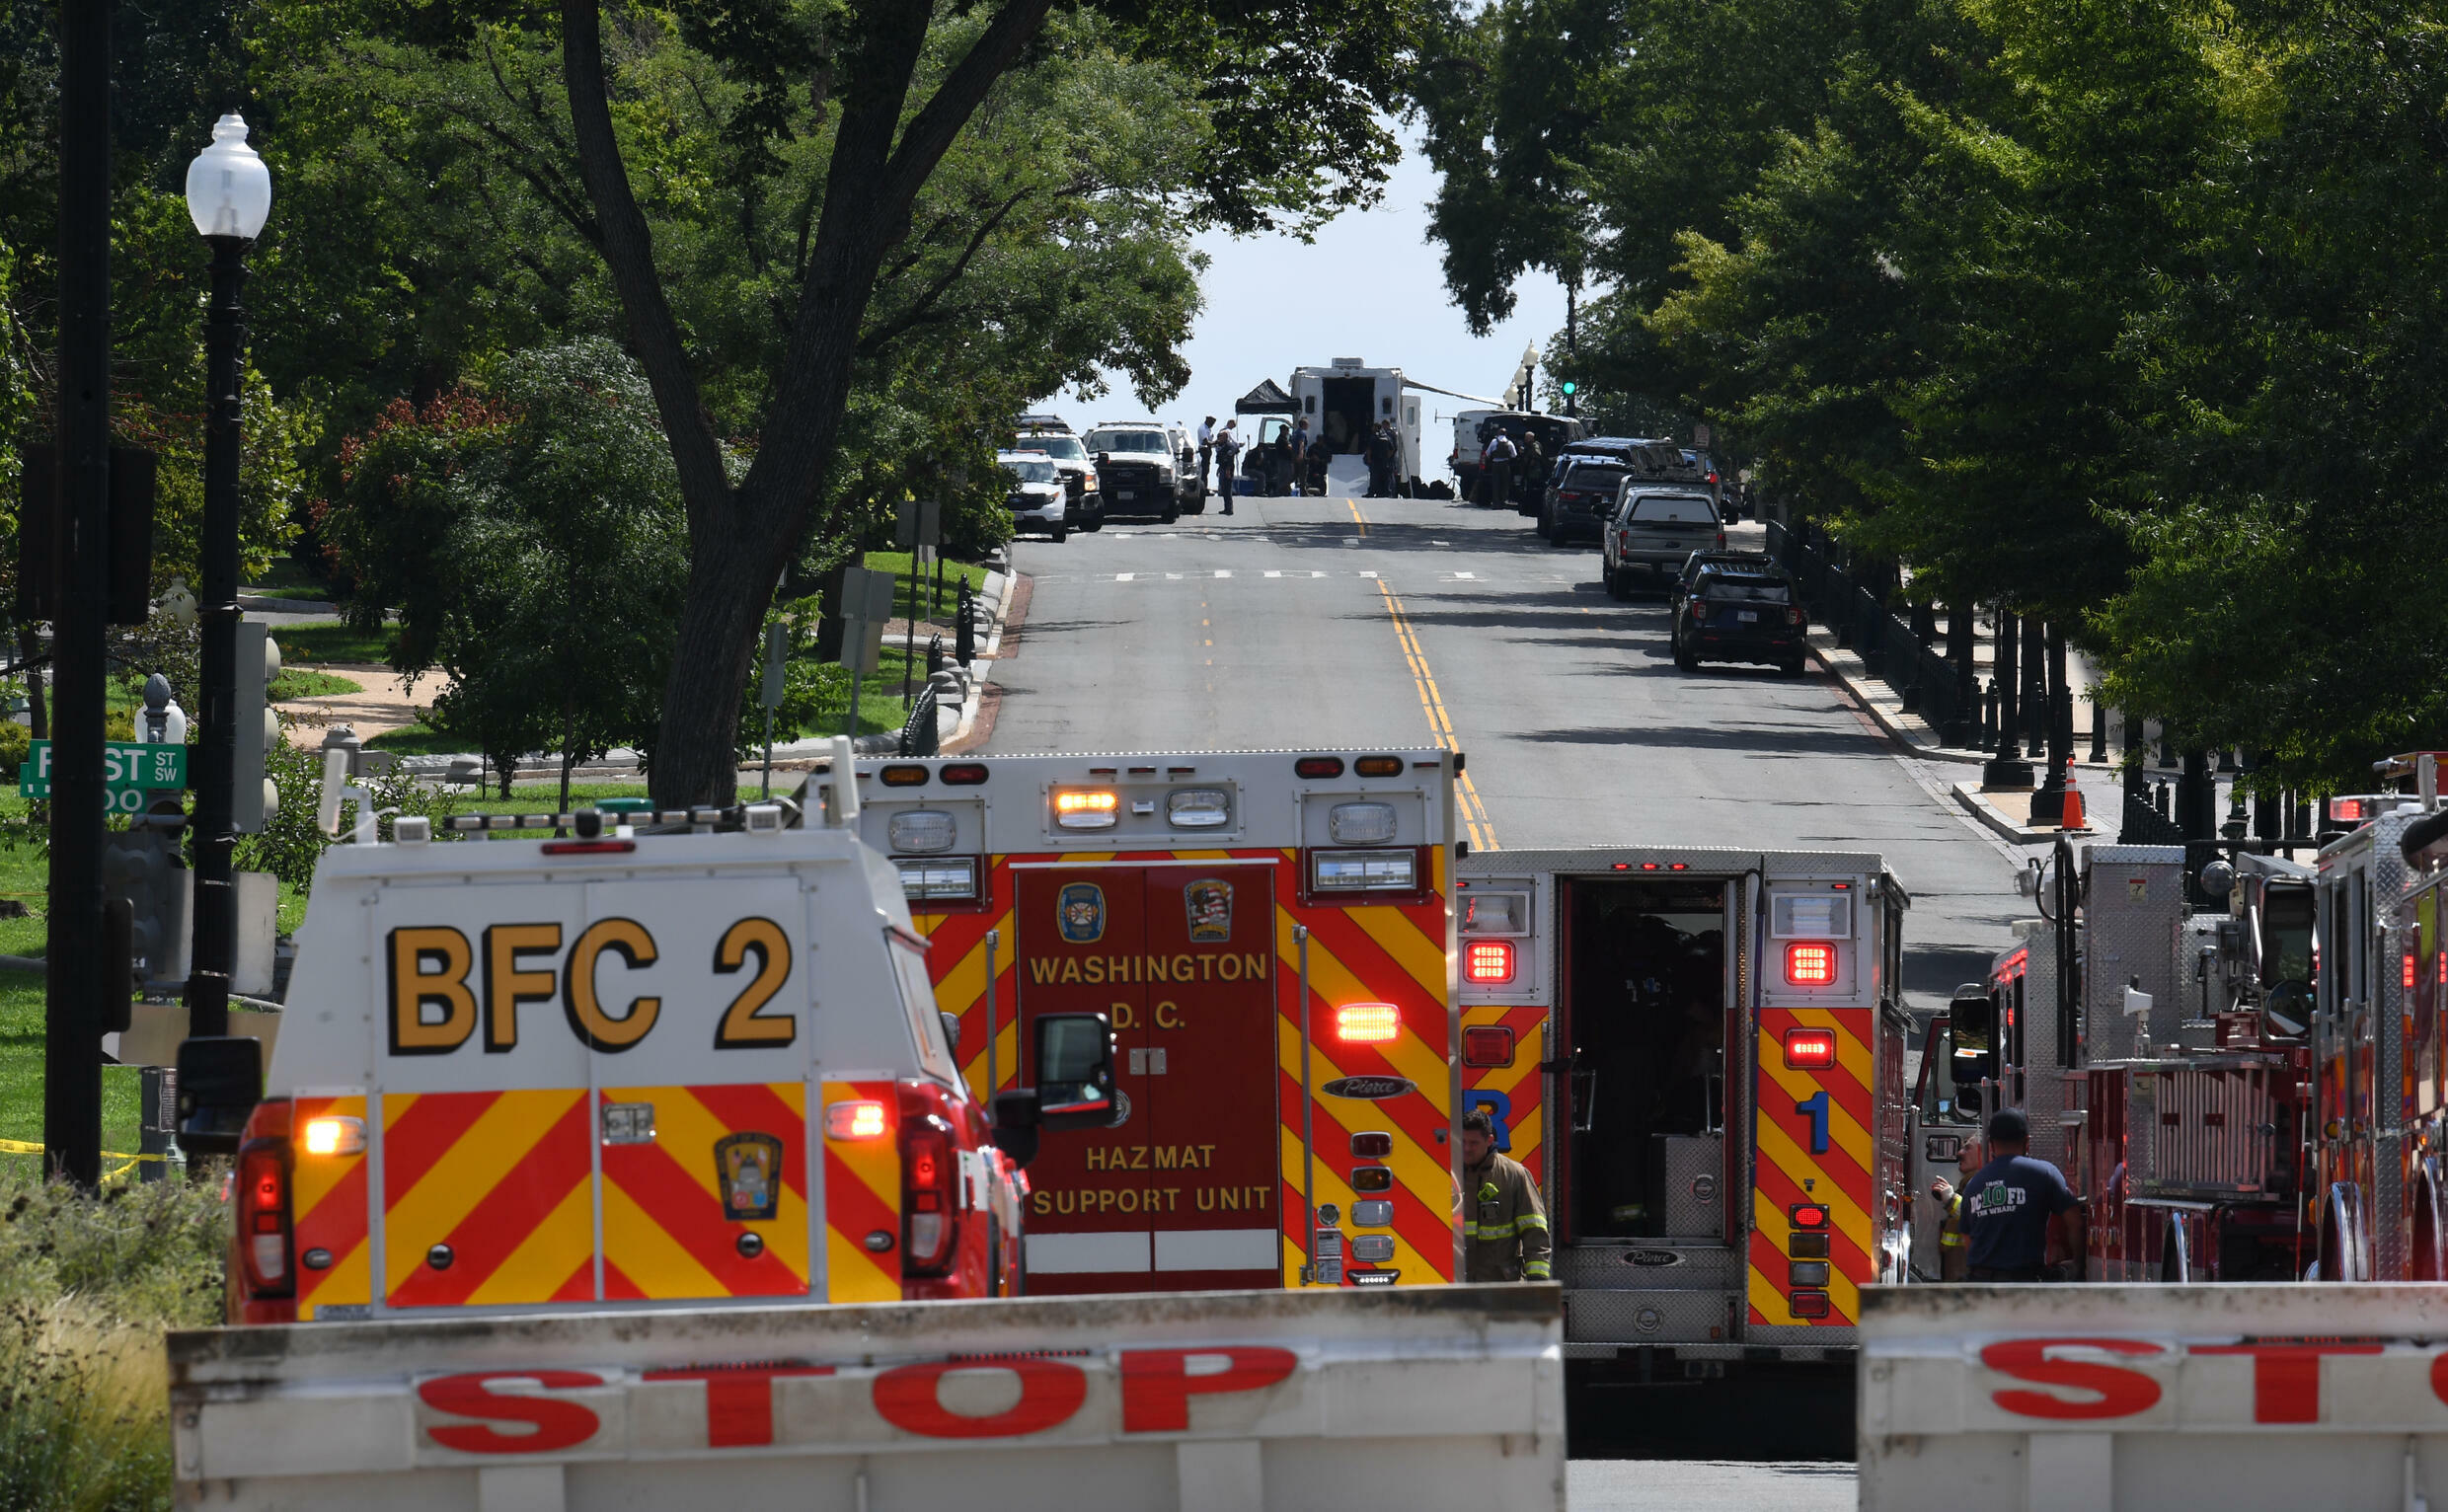 First responders, police and the Federal Bureau of Investigation converged on Capitol Hill to investigate an